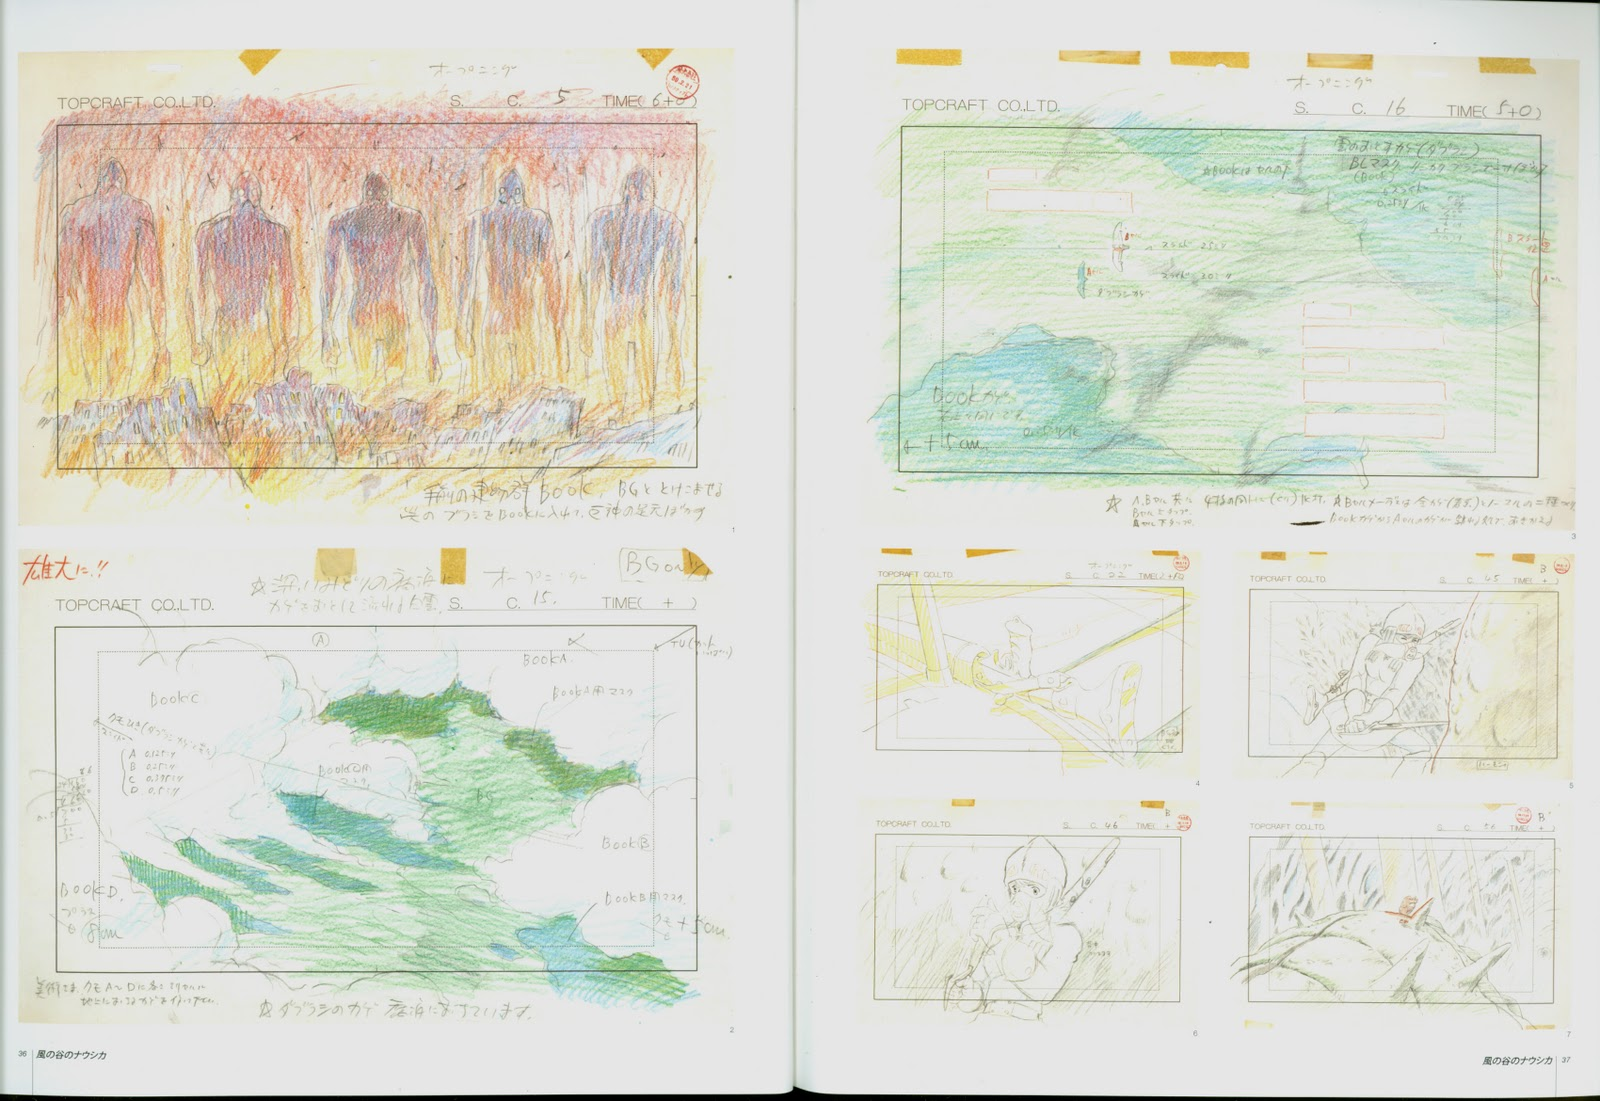 Nausicaa Of The Valley Of The Wind Map.Living Lines Library 風の谷のナウシカ Nausicaa Of The Valley Of